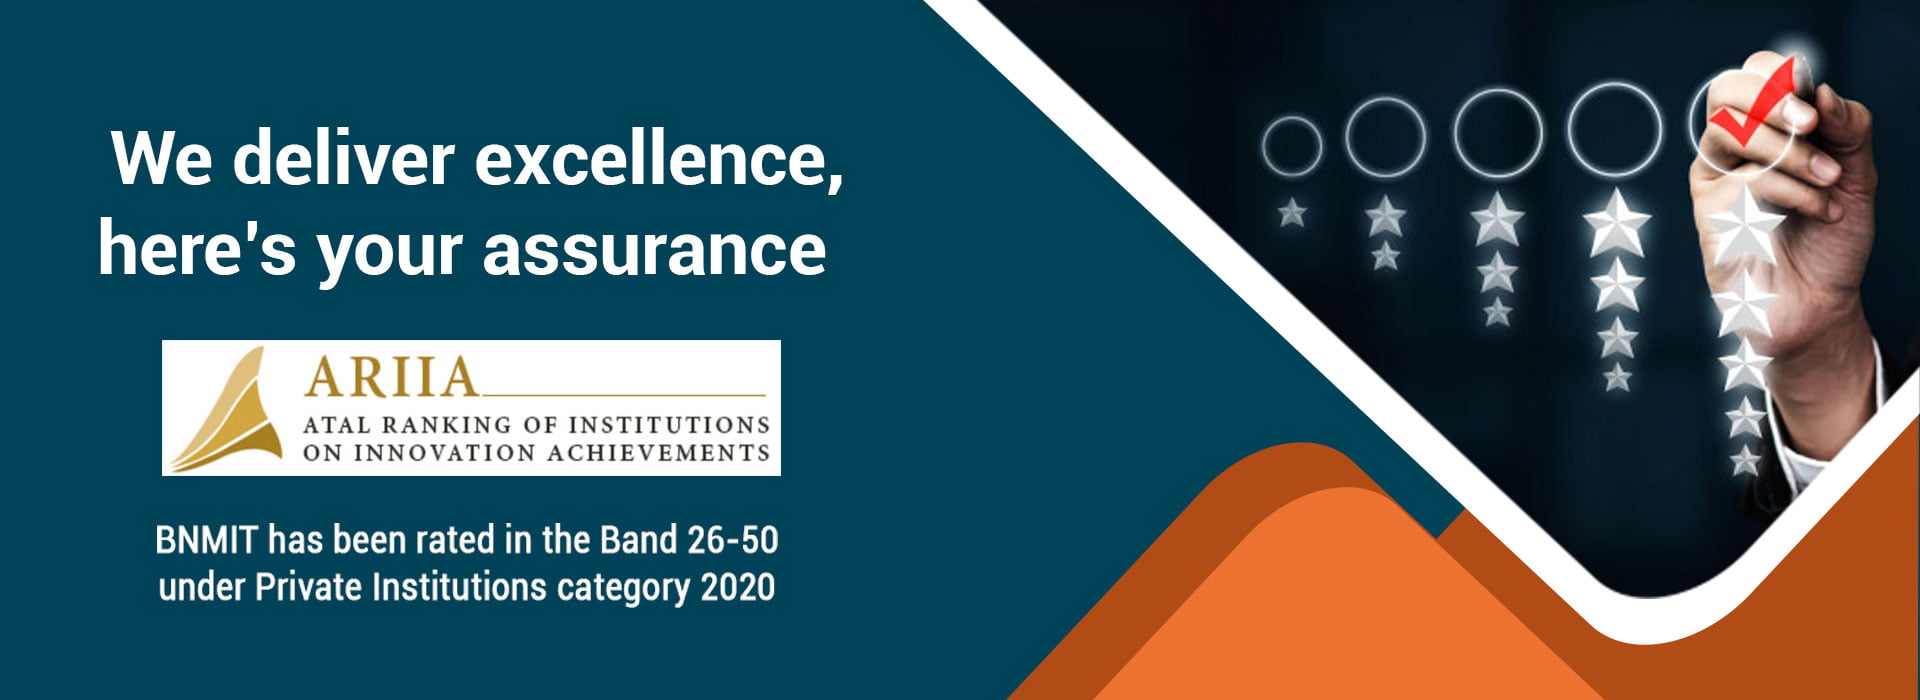 BNMIT has been rated in the Band 26-50 under private institutions category 2020